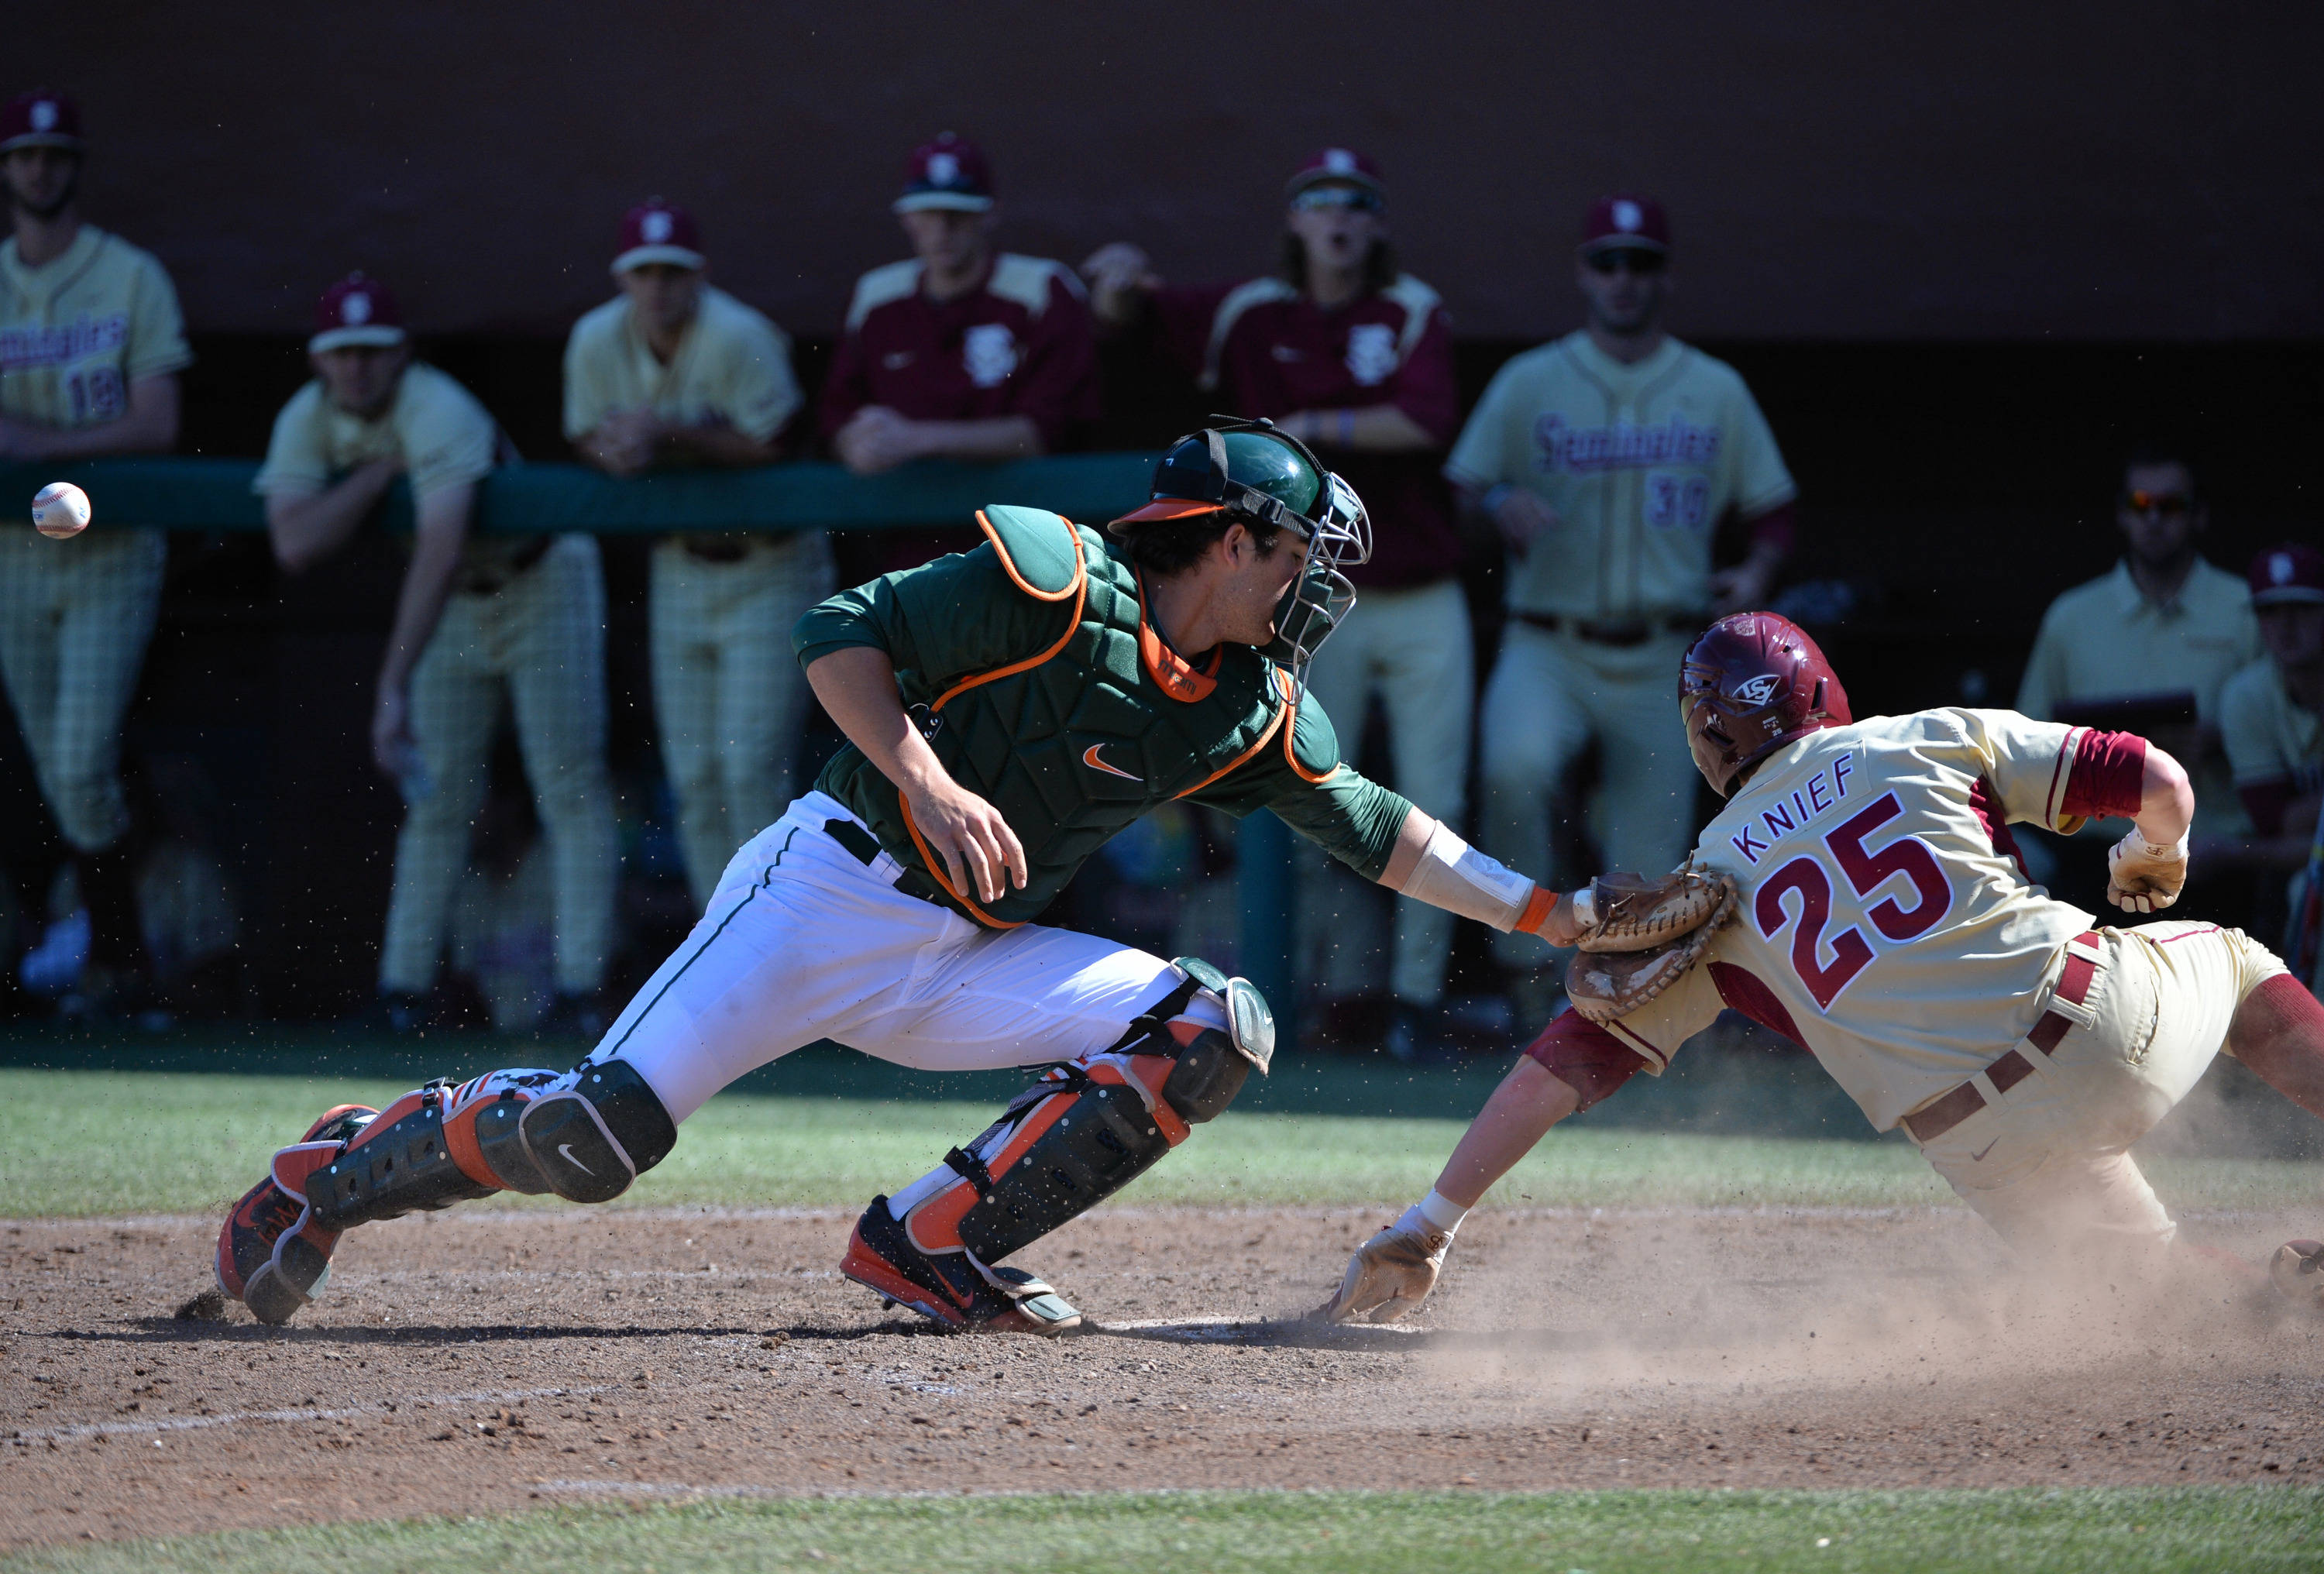 Brett Knief slides a head of the tag at home plate.